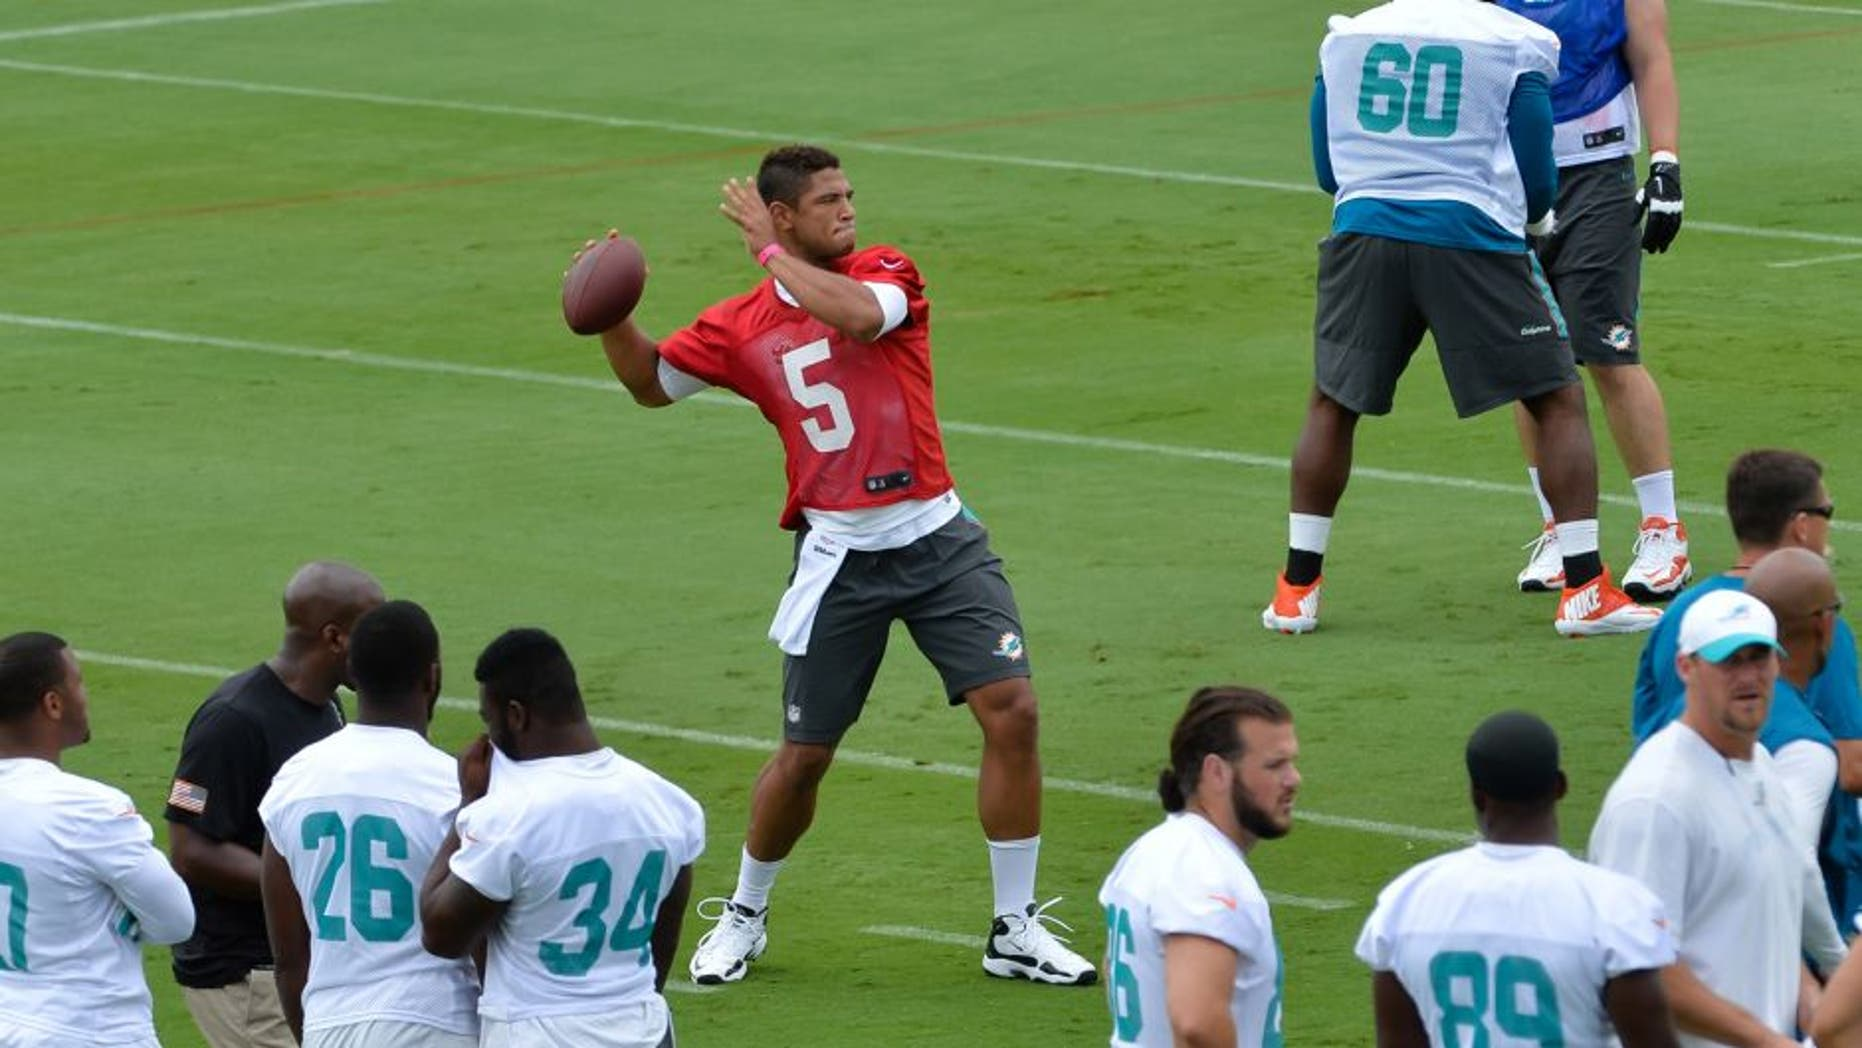 May 26, 2015; Miami, FL, USA; Miami Dolphins quarterback Josh Freeman (5) during practice drills at Miami Dolphins Training Facility. Mandatory Credit: Steve Mitchell-USA TODAY Sports